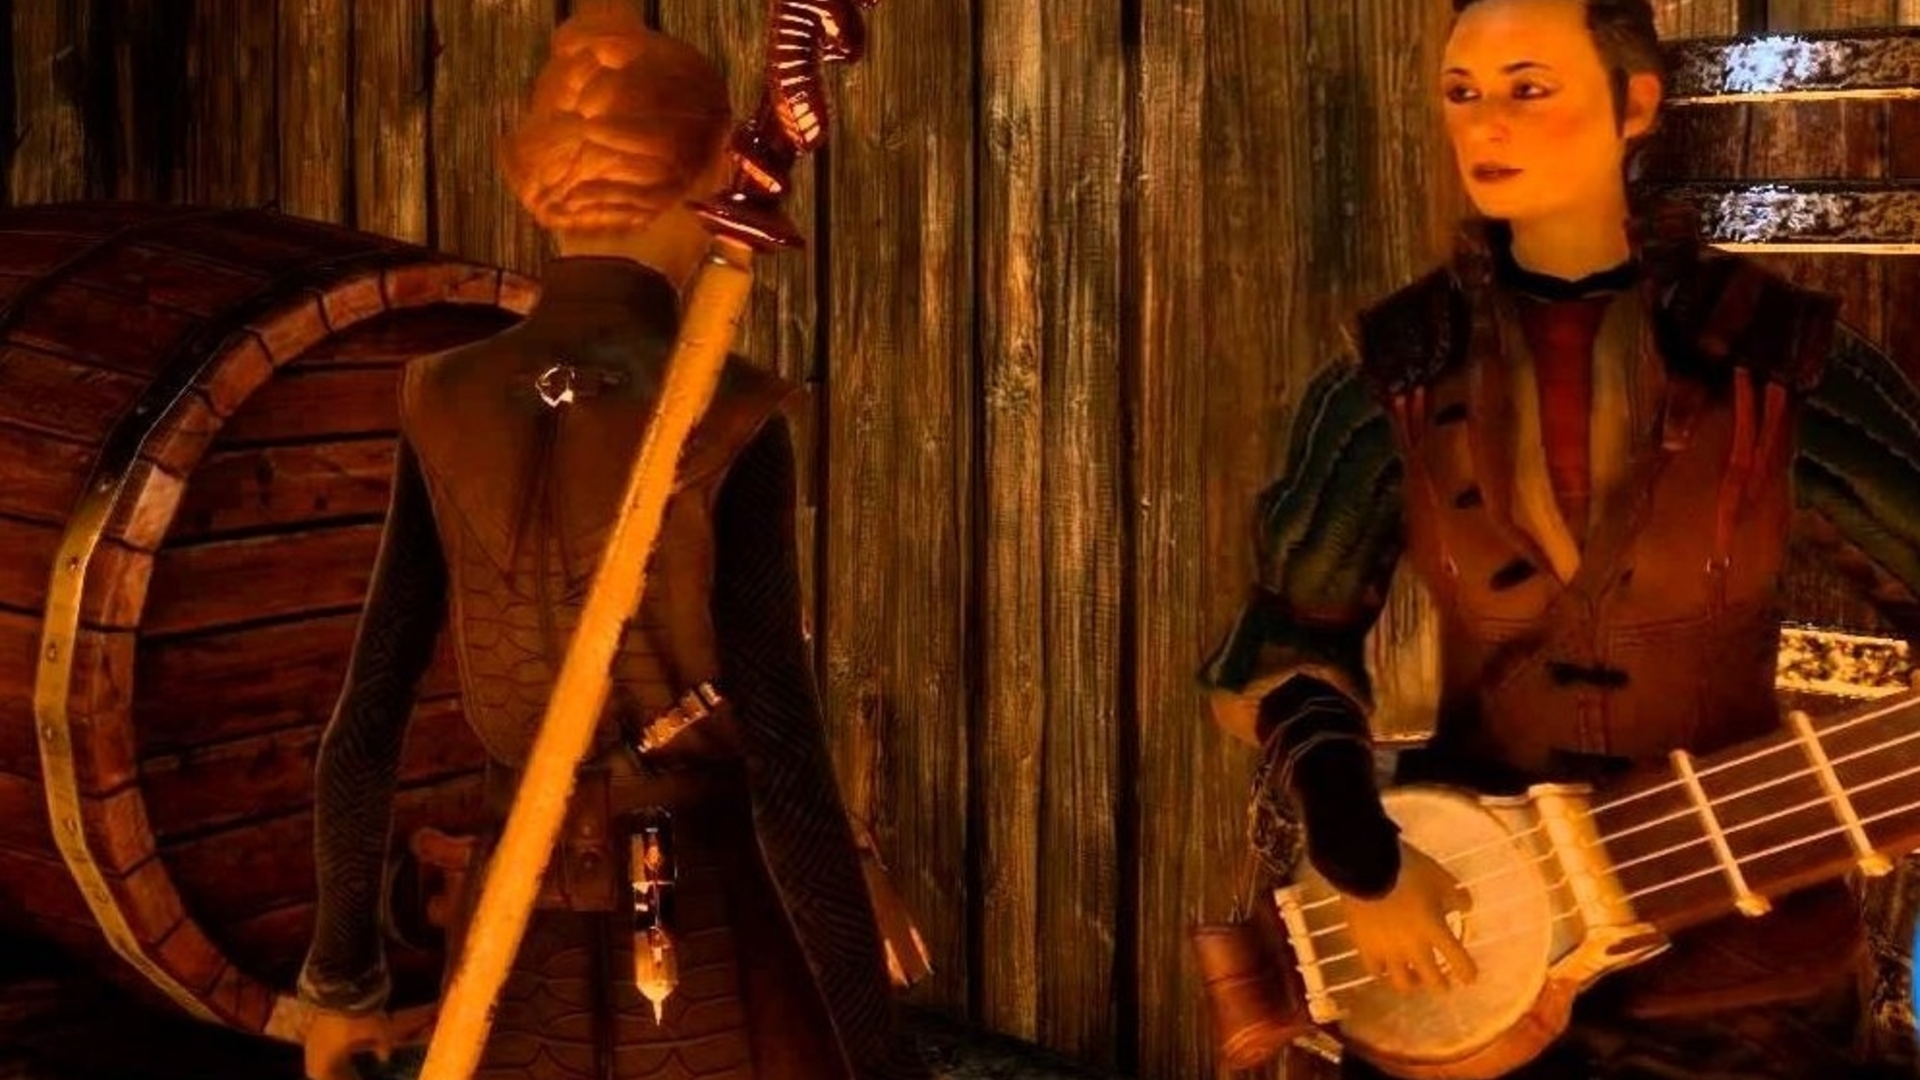 Dragon Age: Inquisition's tavern songs are available for free